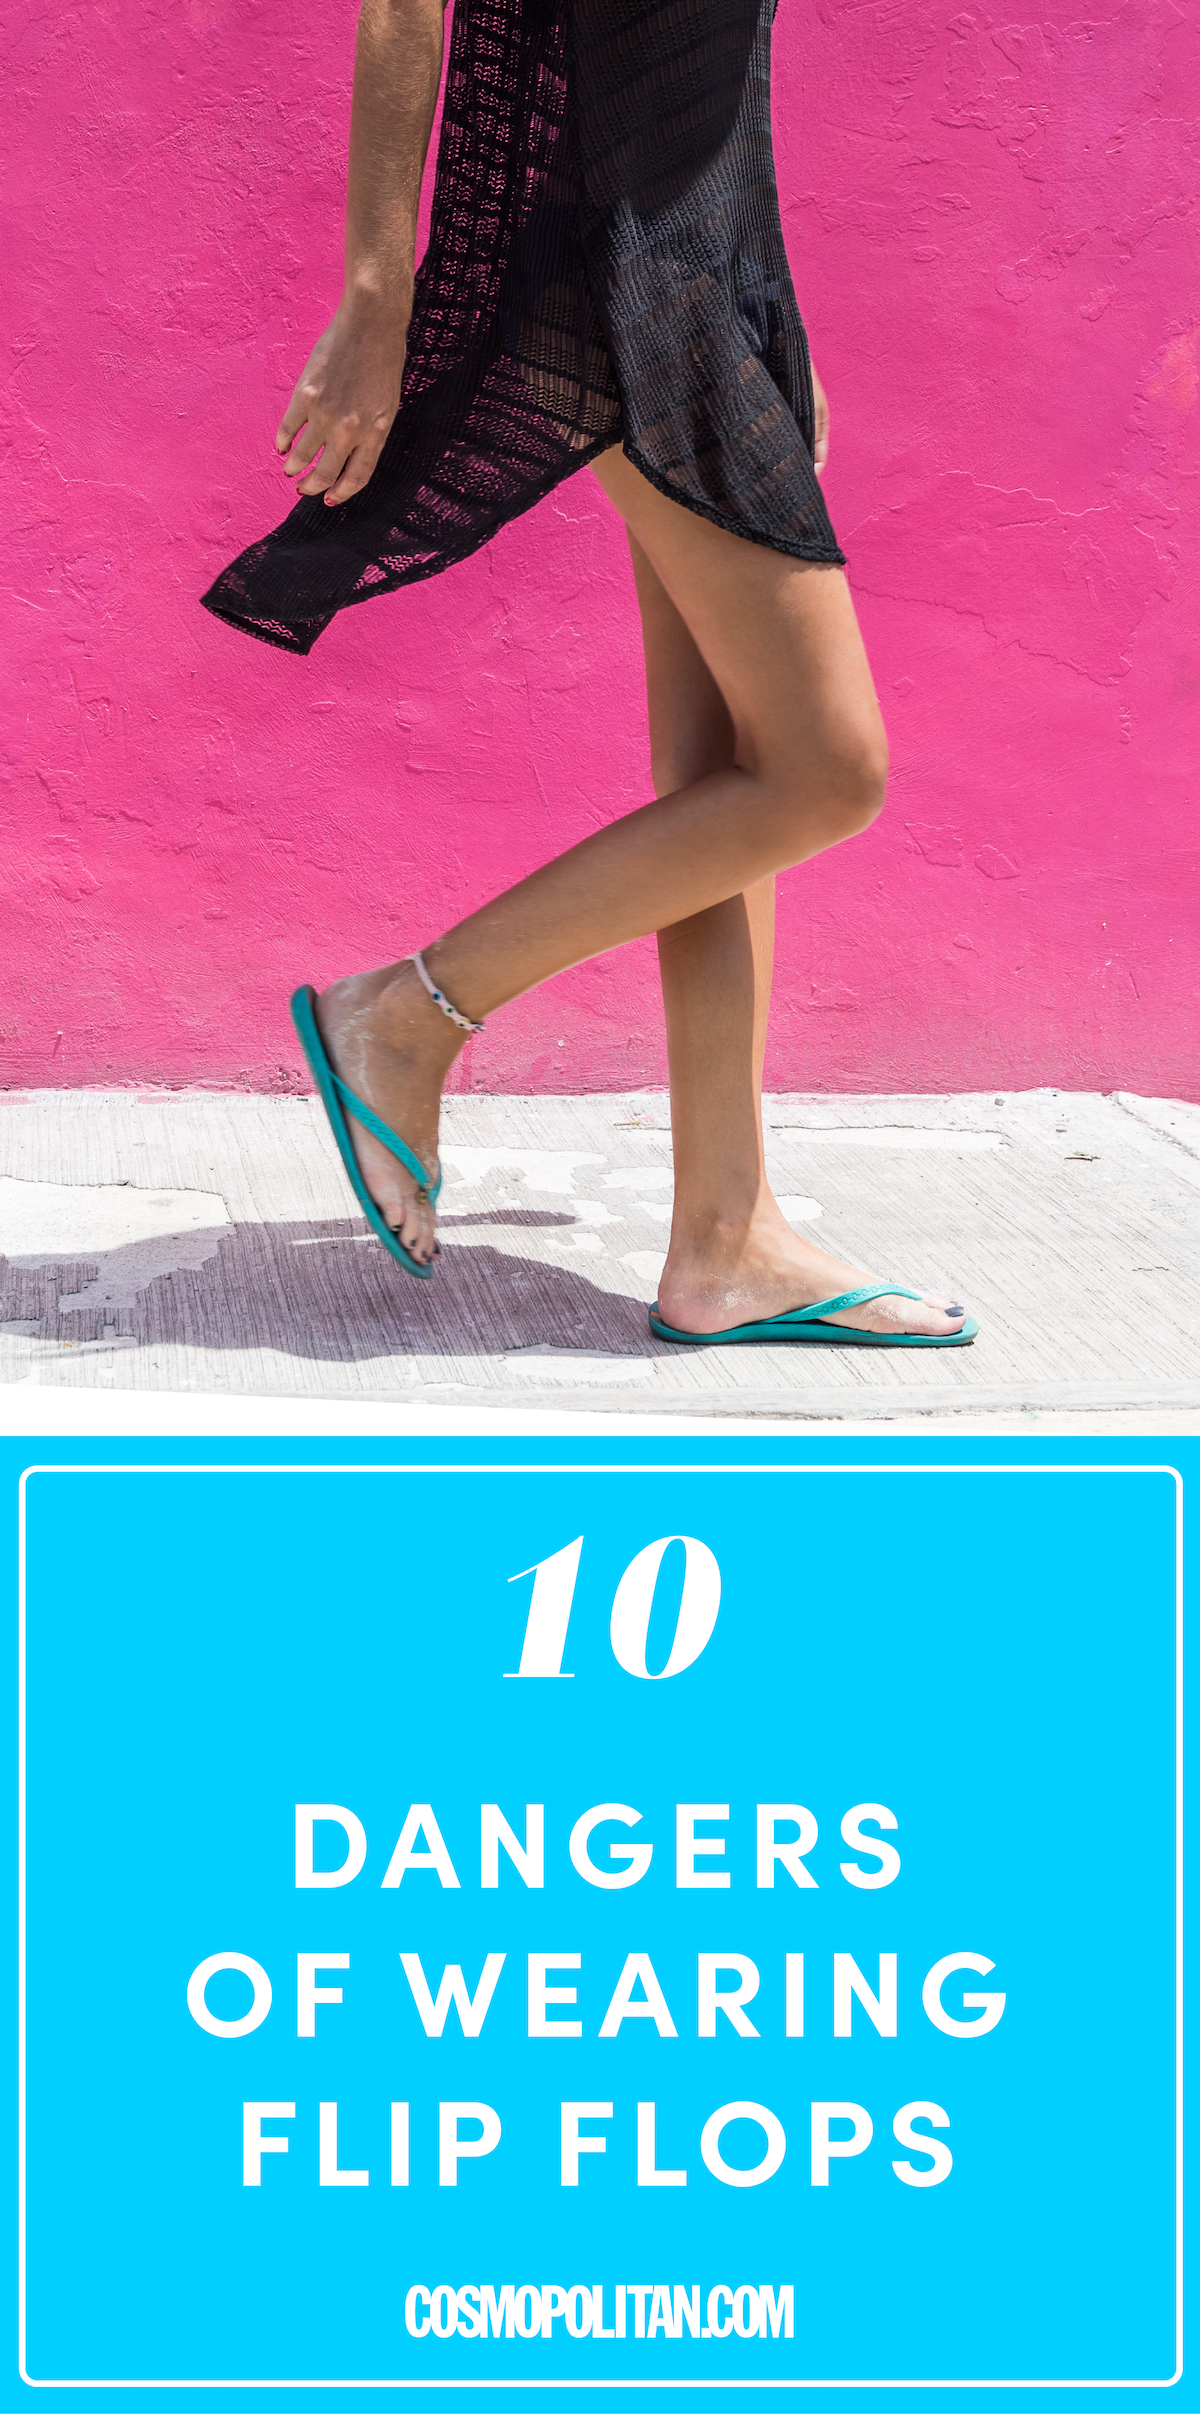 10 Reasons You Should Never, Ever Wear Flip-Flops